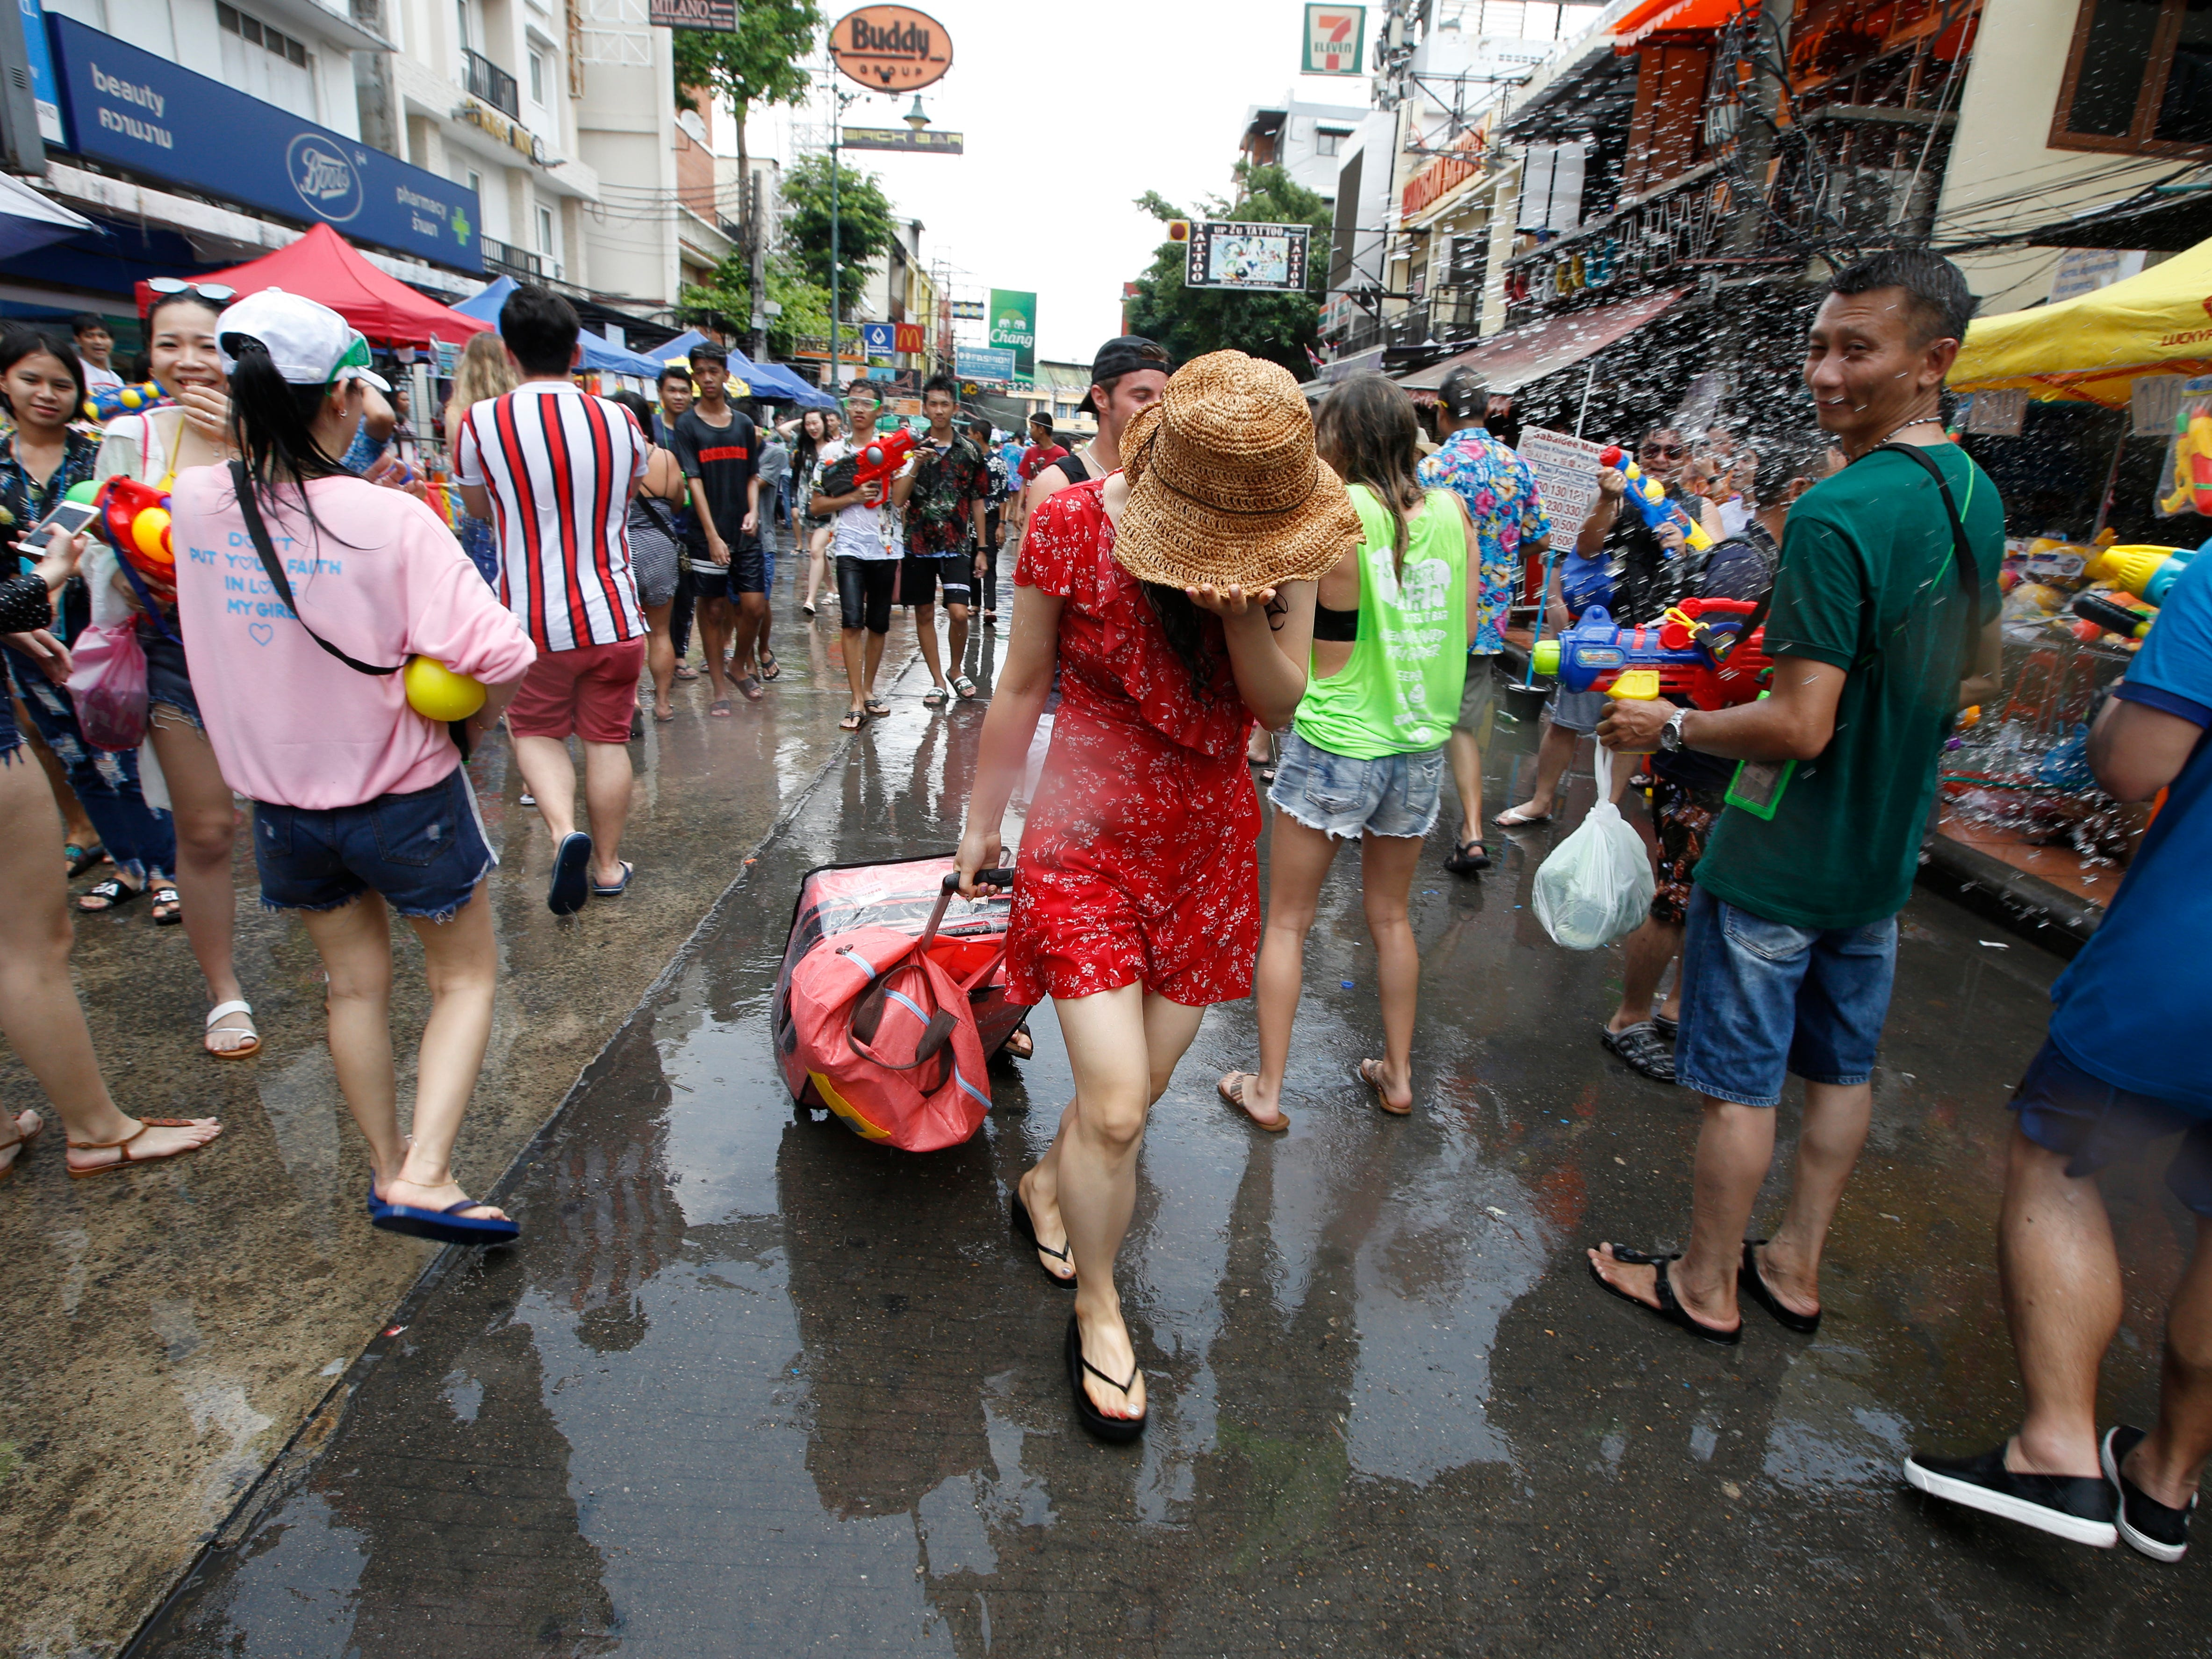 A tourist woman is soaked as she arrives on the popular tourist strip of Khao San road during the Songkran Festival, the celebrations on Thai traditional New Year, also known as the water festival in Bangkok, Thailand on April 13, 2019. Songkran Festival is held to mark the Thai traditional New Year falling annually on 13 April, and it is celebrated throughout the Kingdom with splashing water and putting powder on each others faces as a symbolic sign of cleansing and washing away the sins from the past year.